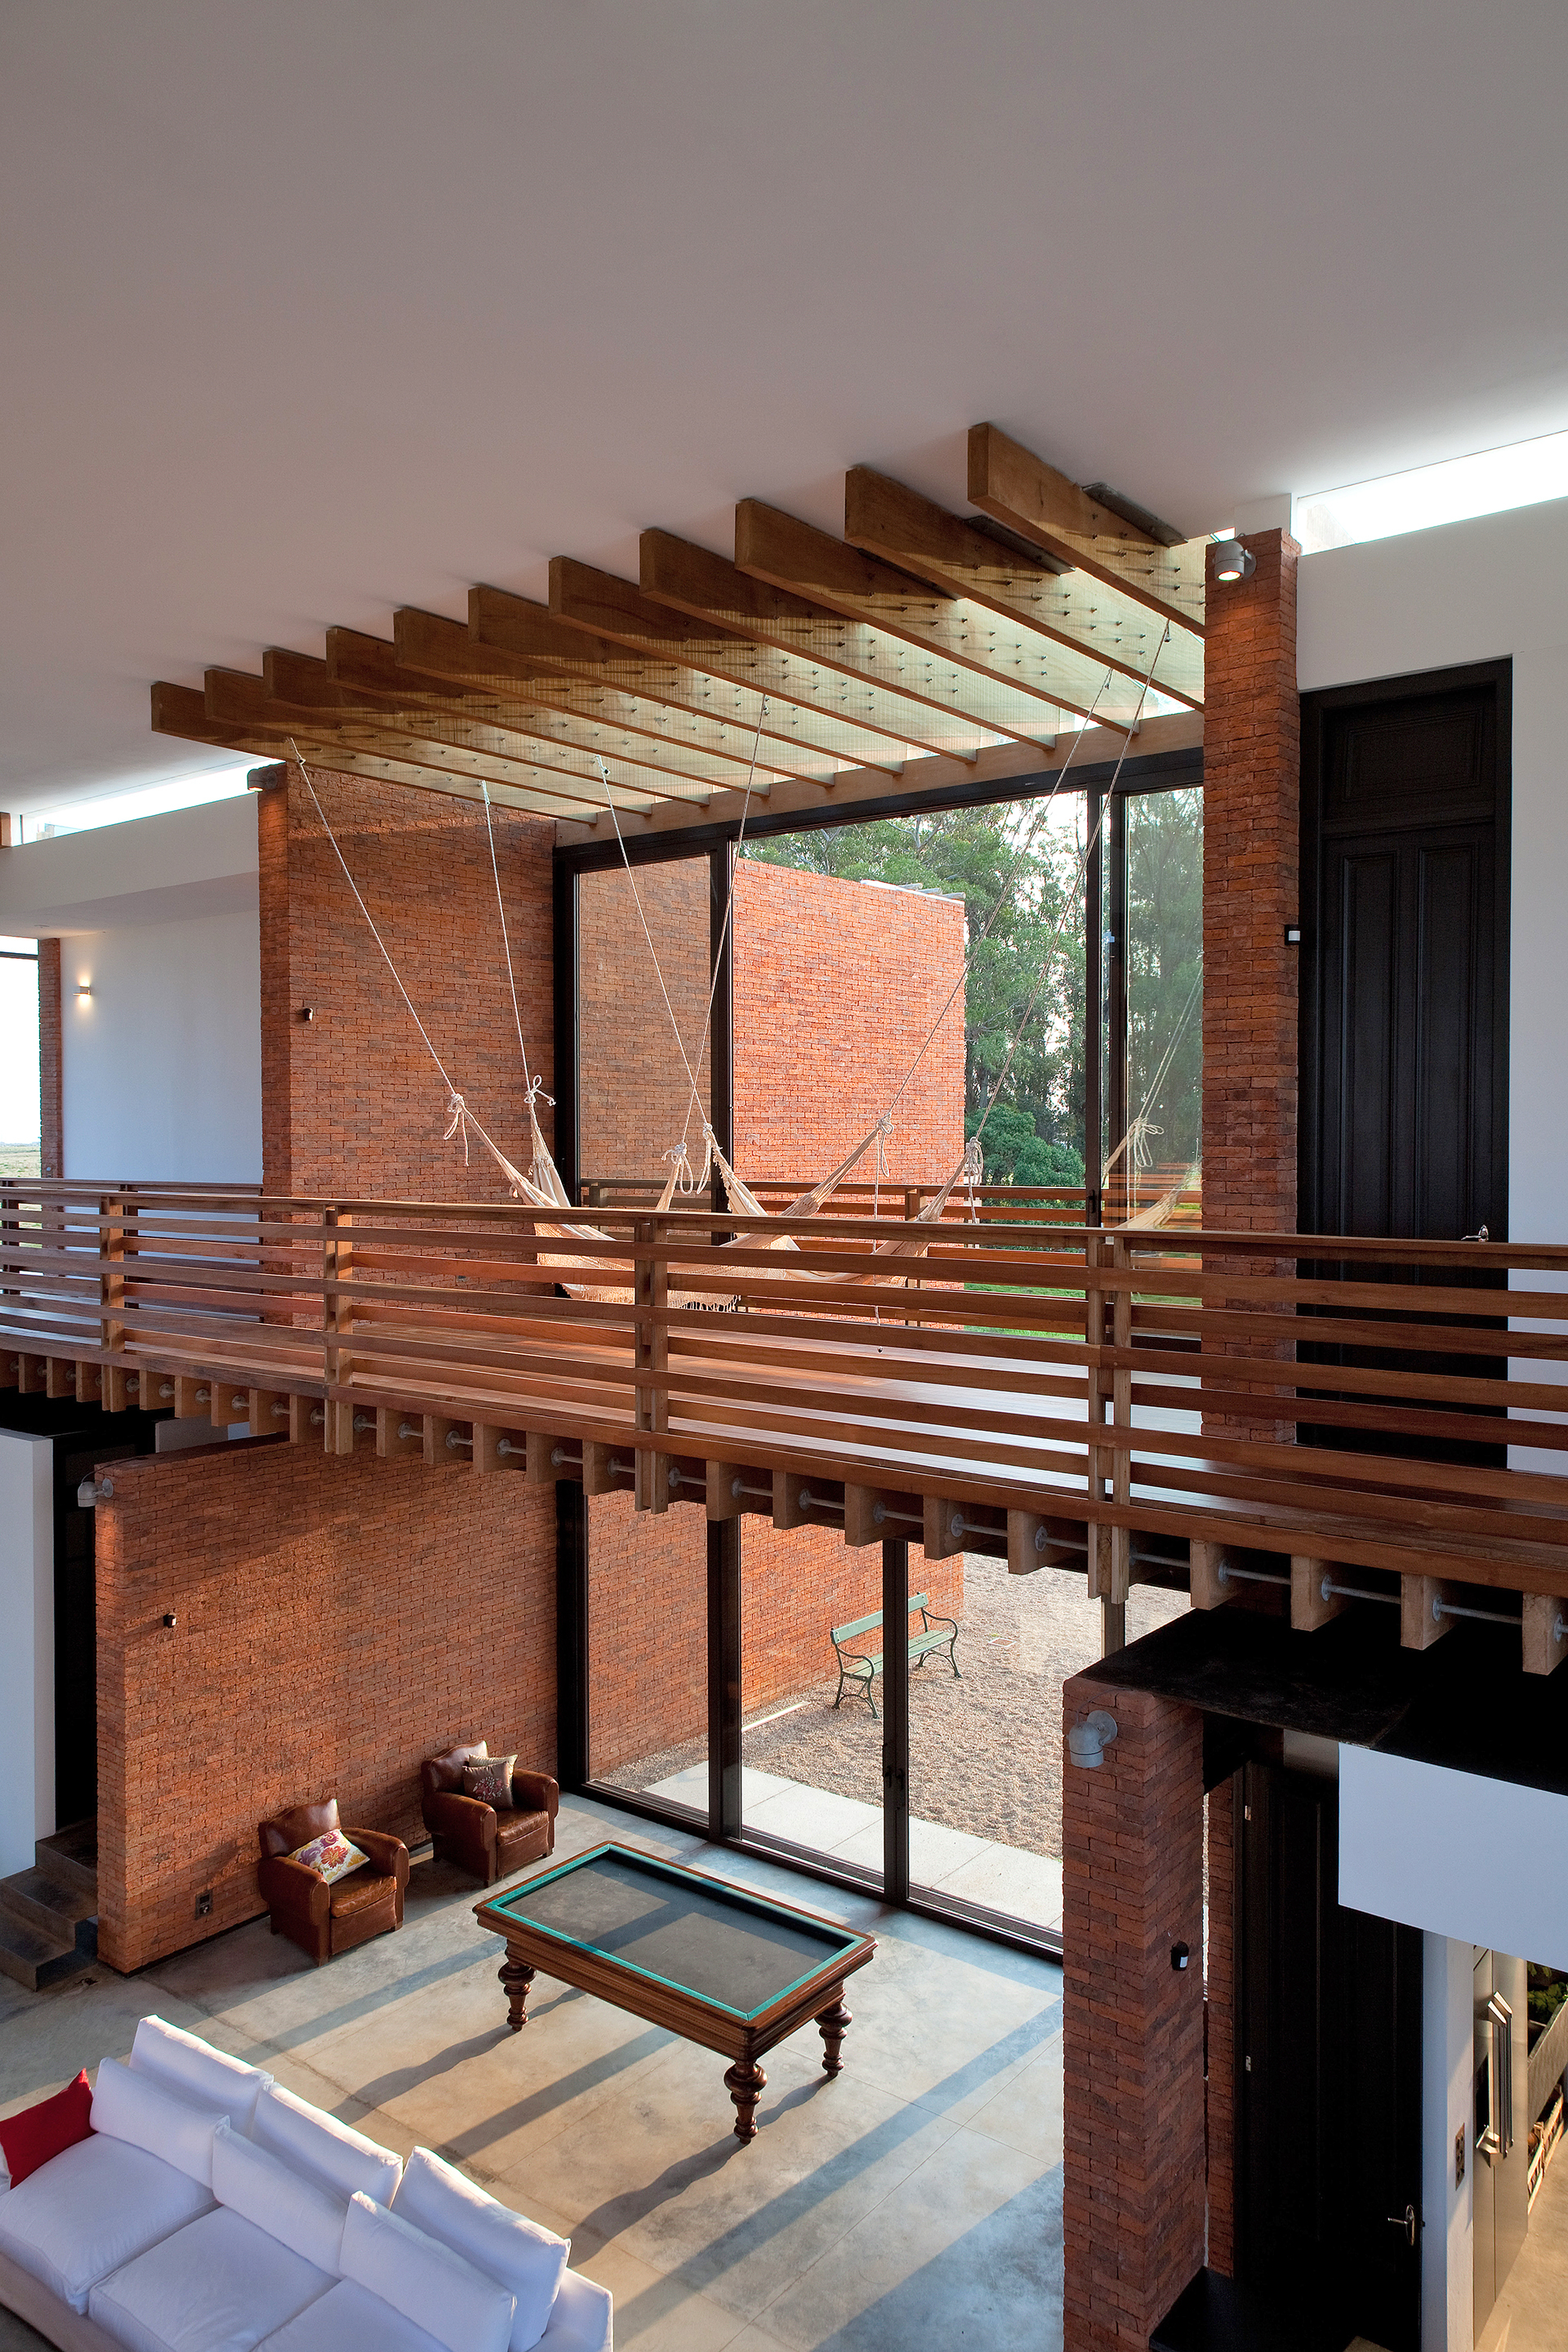 Gallery of luna llena house candida tabet arquitetura 33 - Residence secondaire candida tabet architecture ...